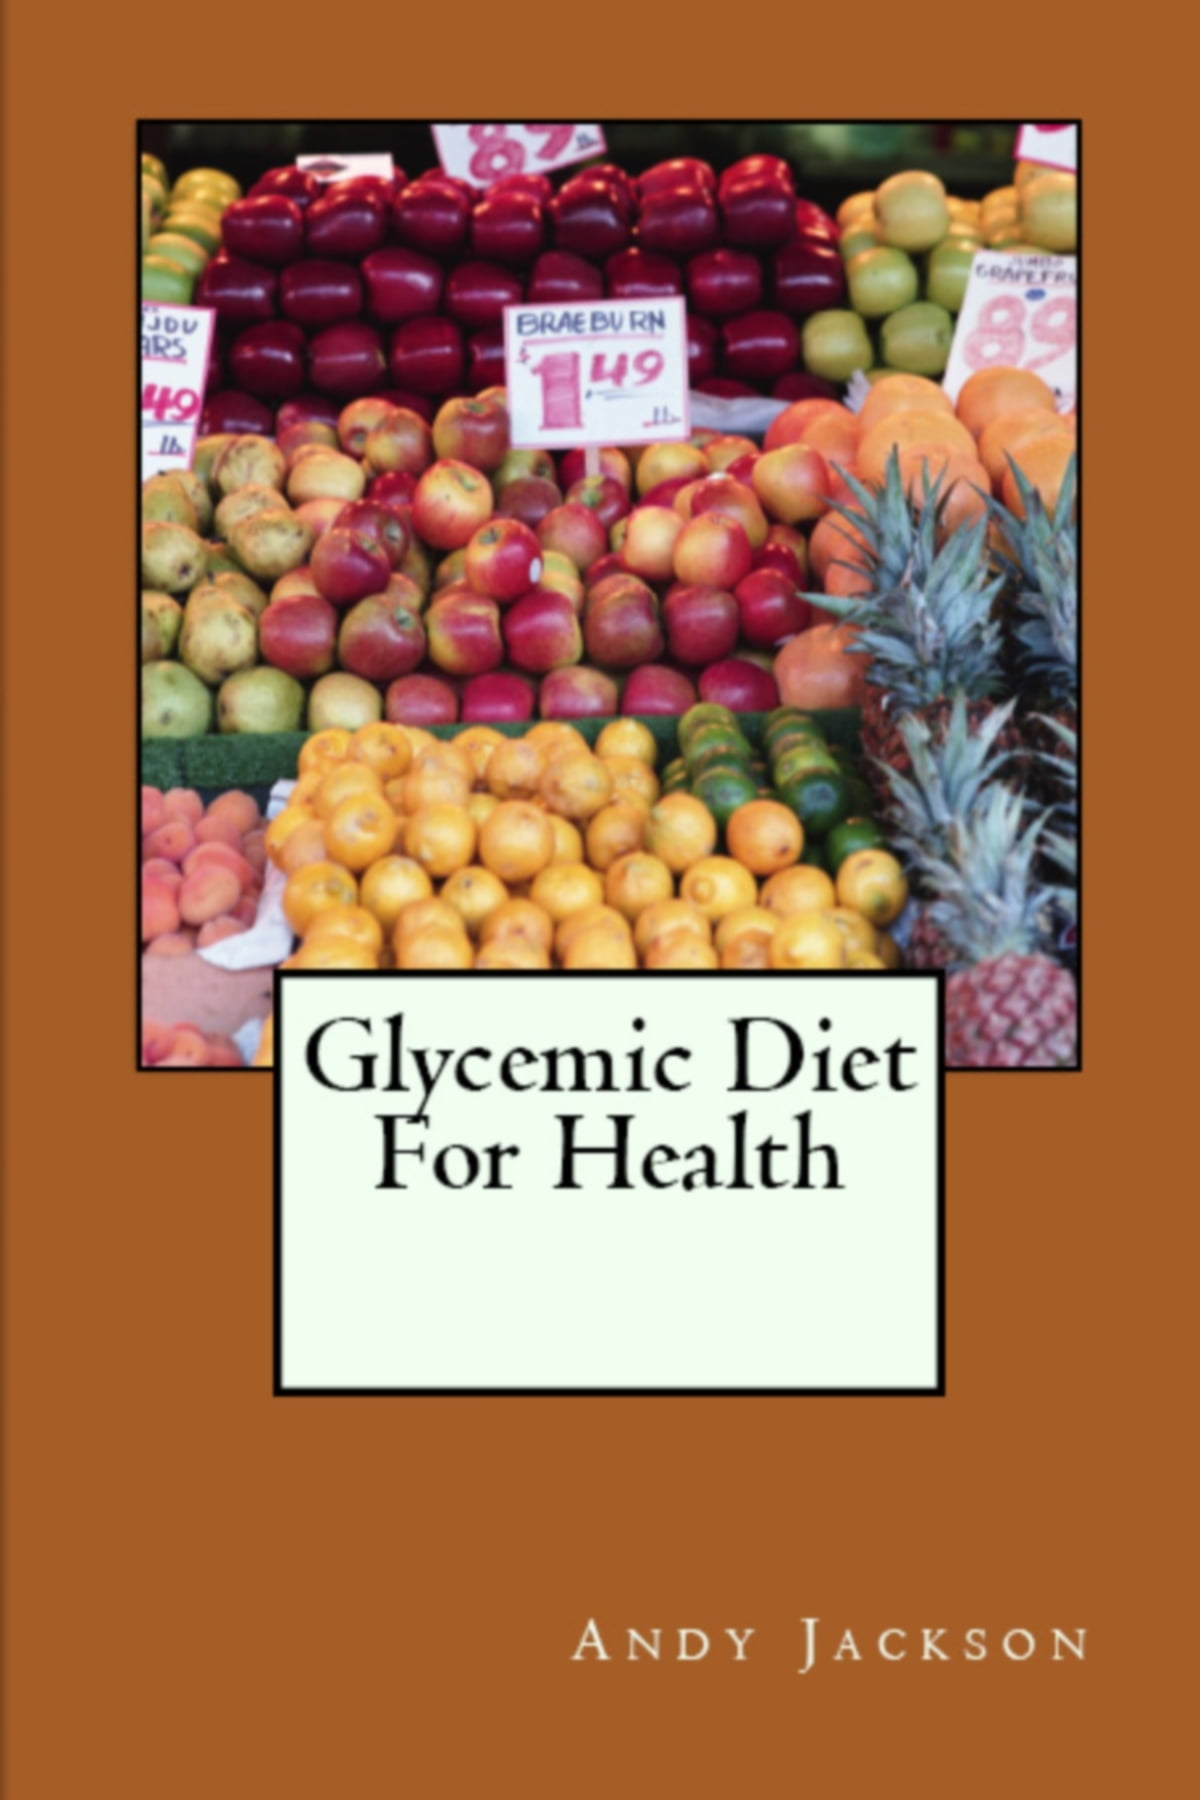 Diet Plan To Lose Weight Fast Glycemic Diet For Health Using The Glycemic Index Diet Plan To Lose Weight Fast Ebook By Andy Jackson Rakuten Kobo